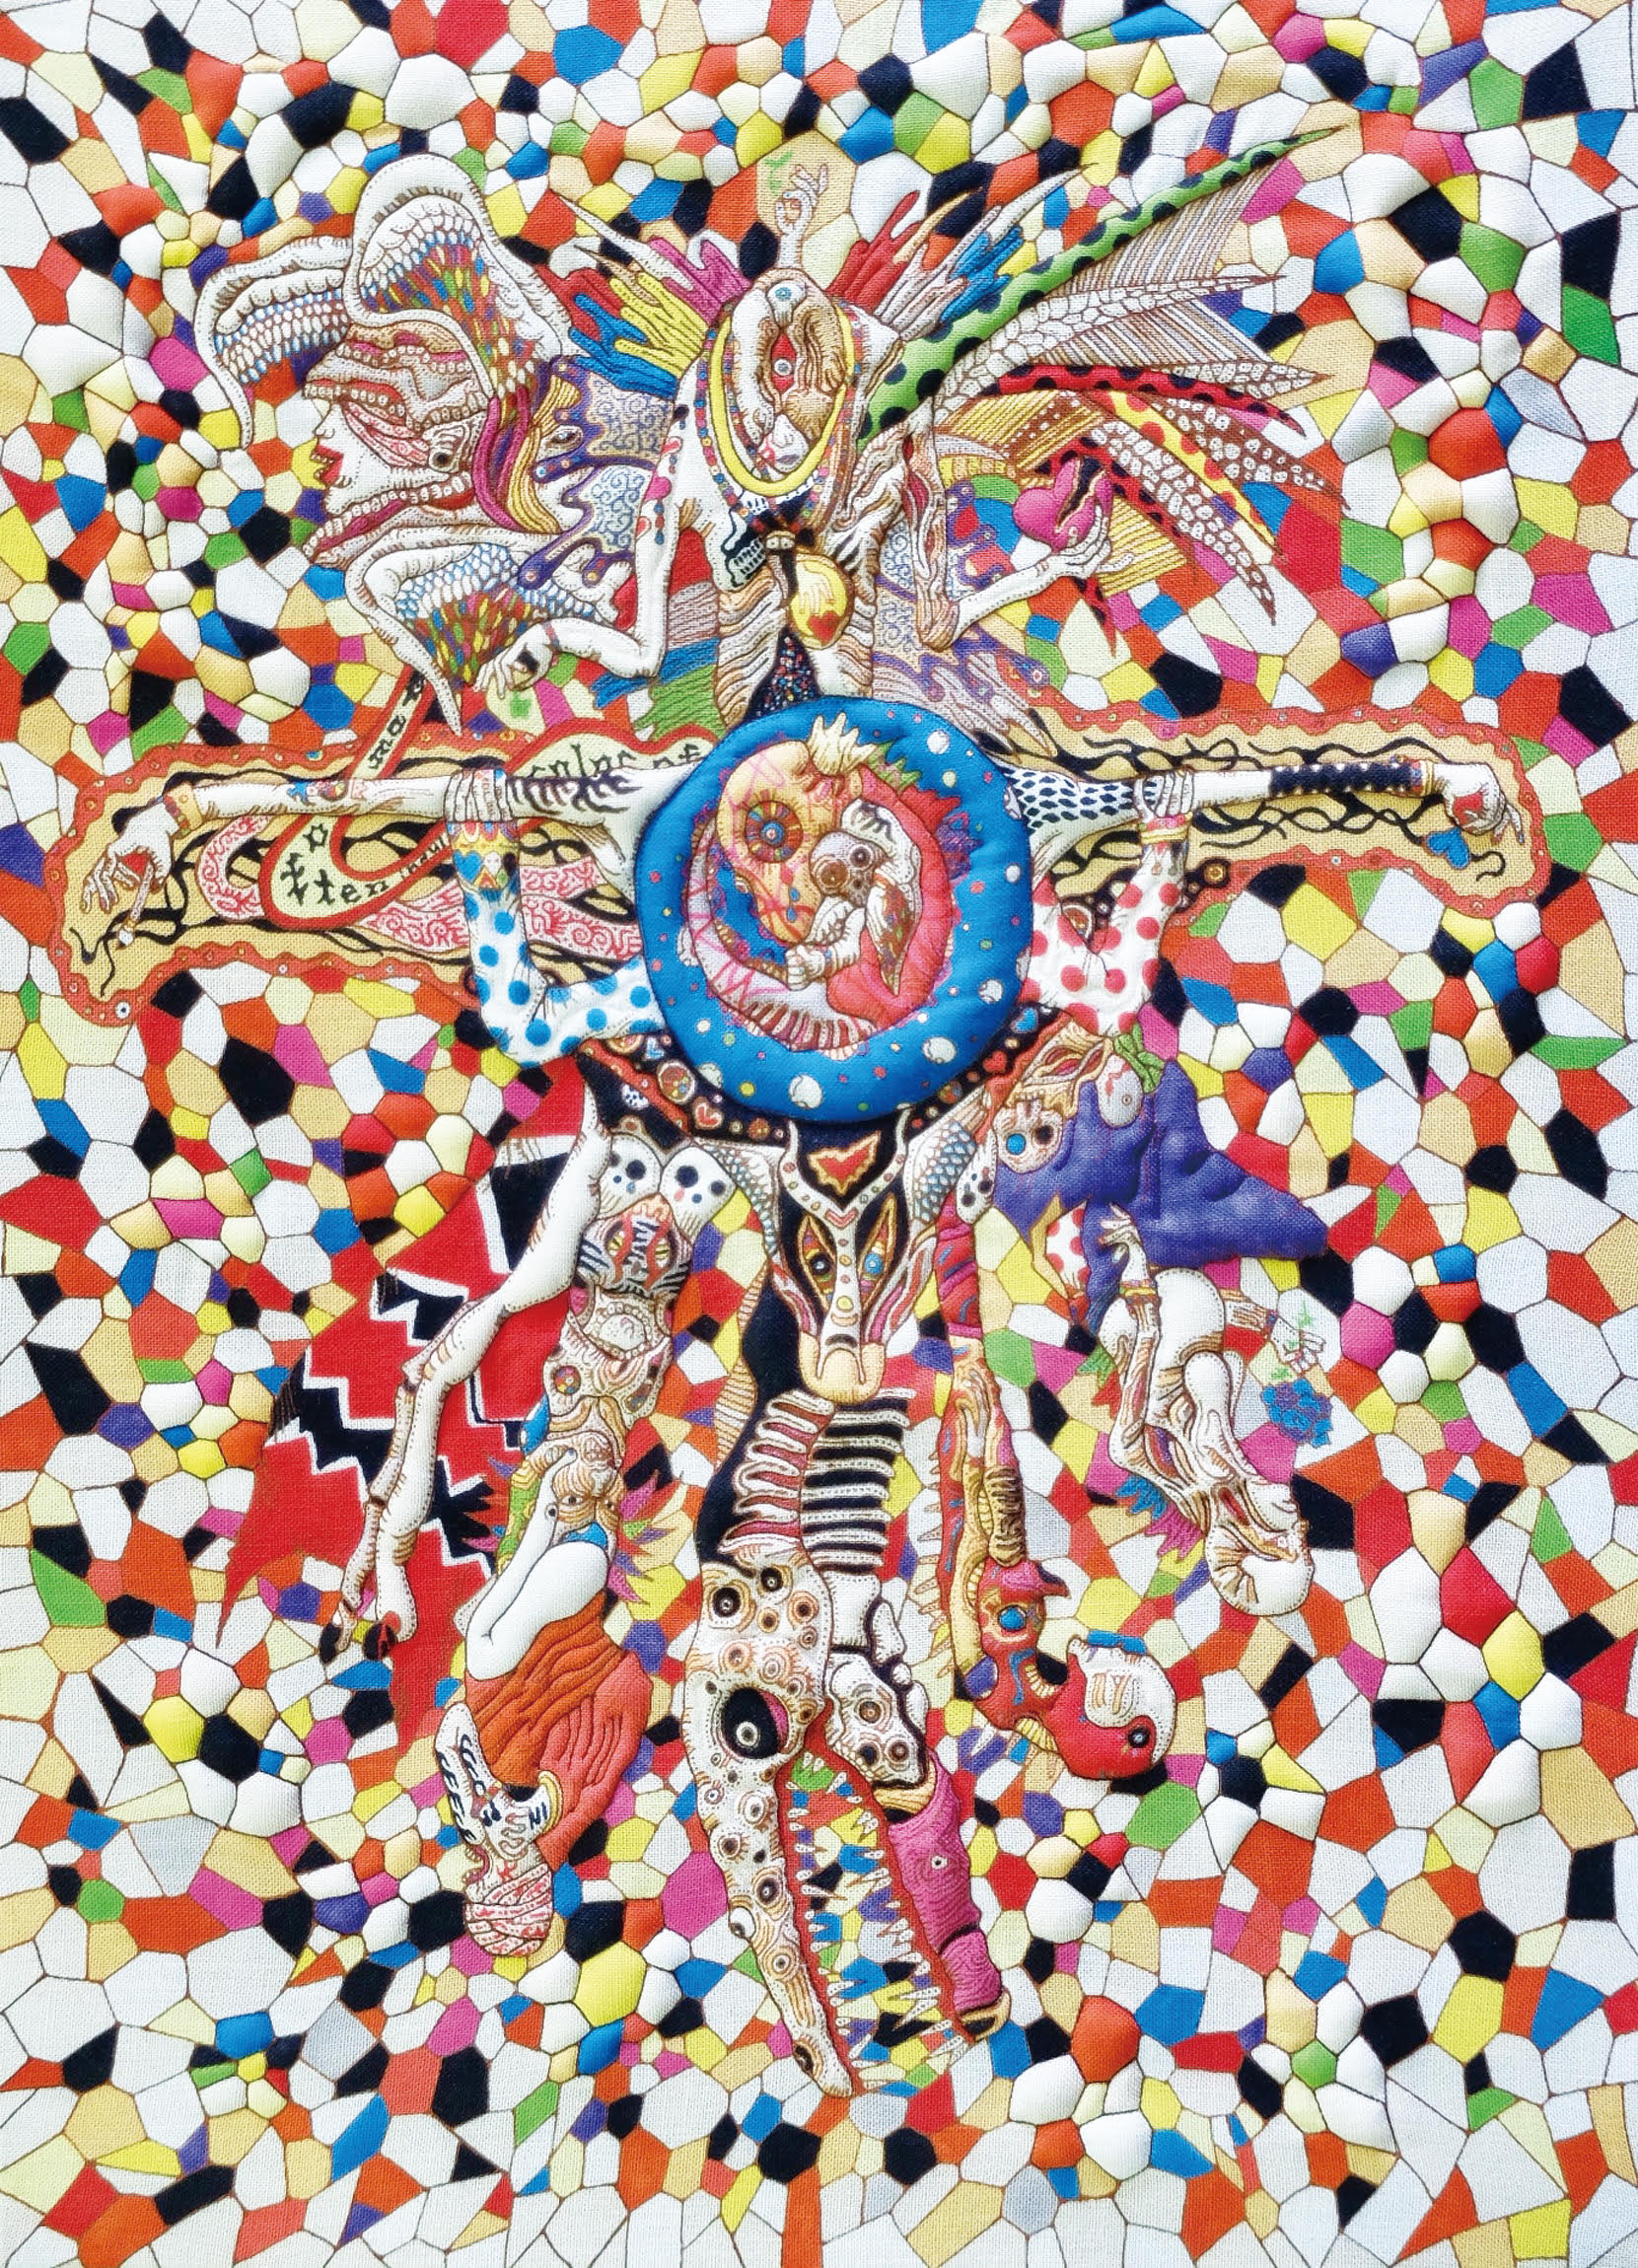 sanctuary,Shoichi Tsurukawa,2017,72.7x53.0cm,Cotton art cross,paste,sirius dyes,cotton on panel